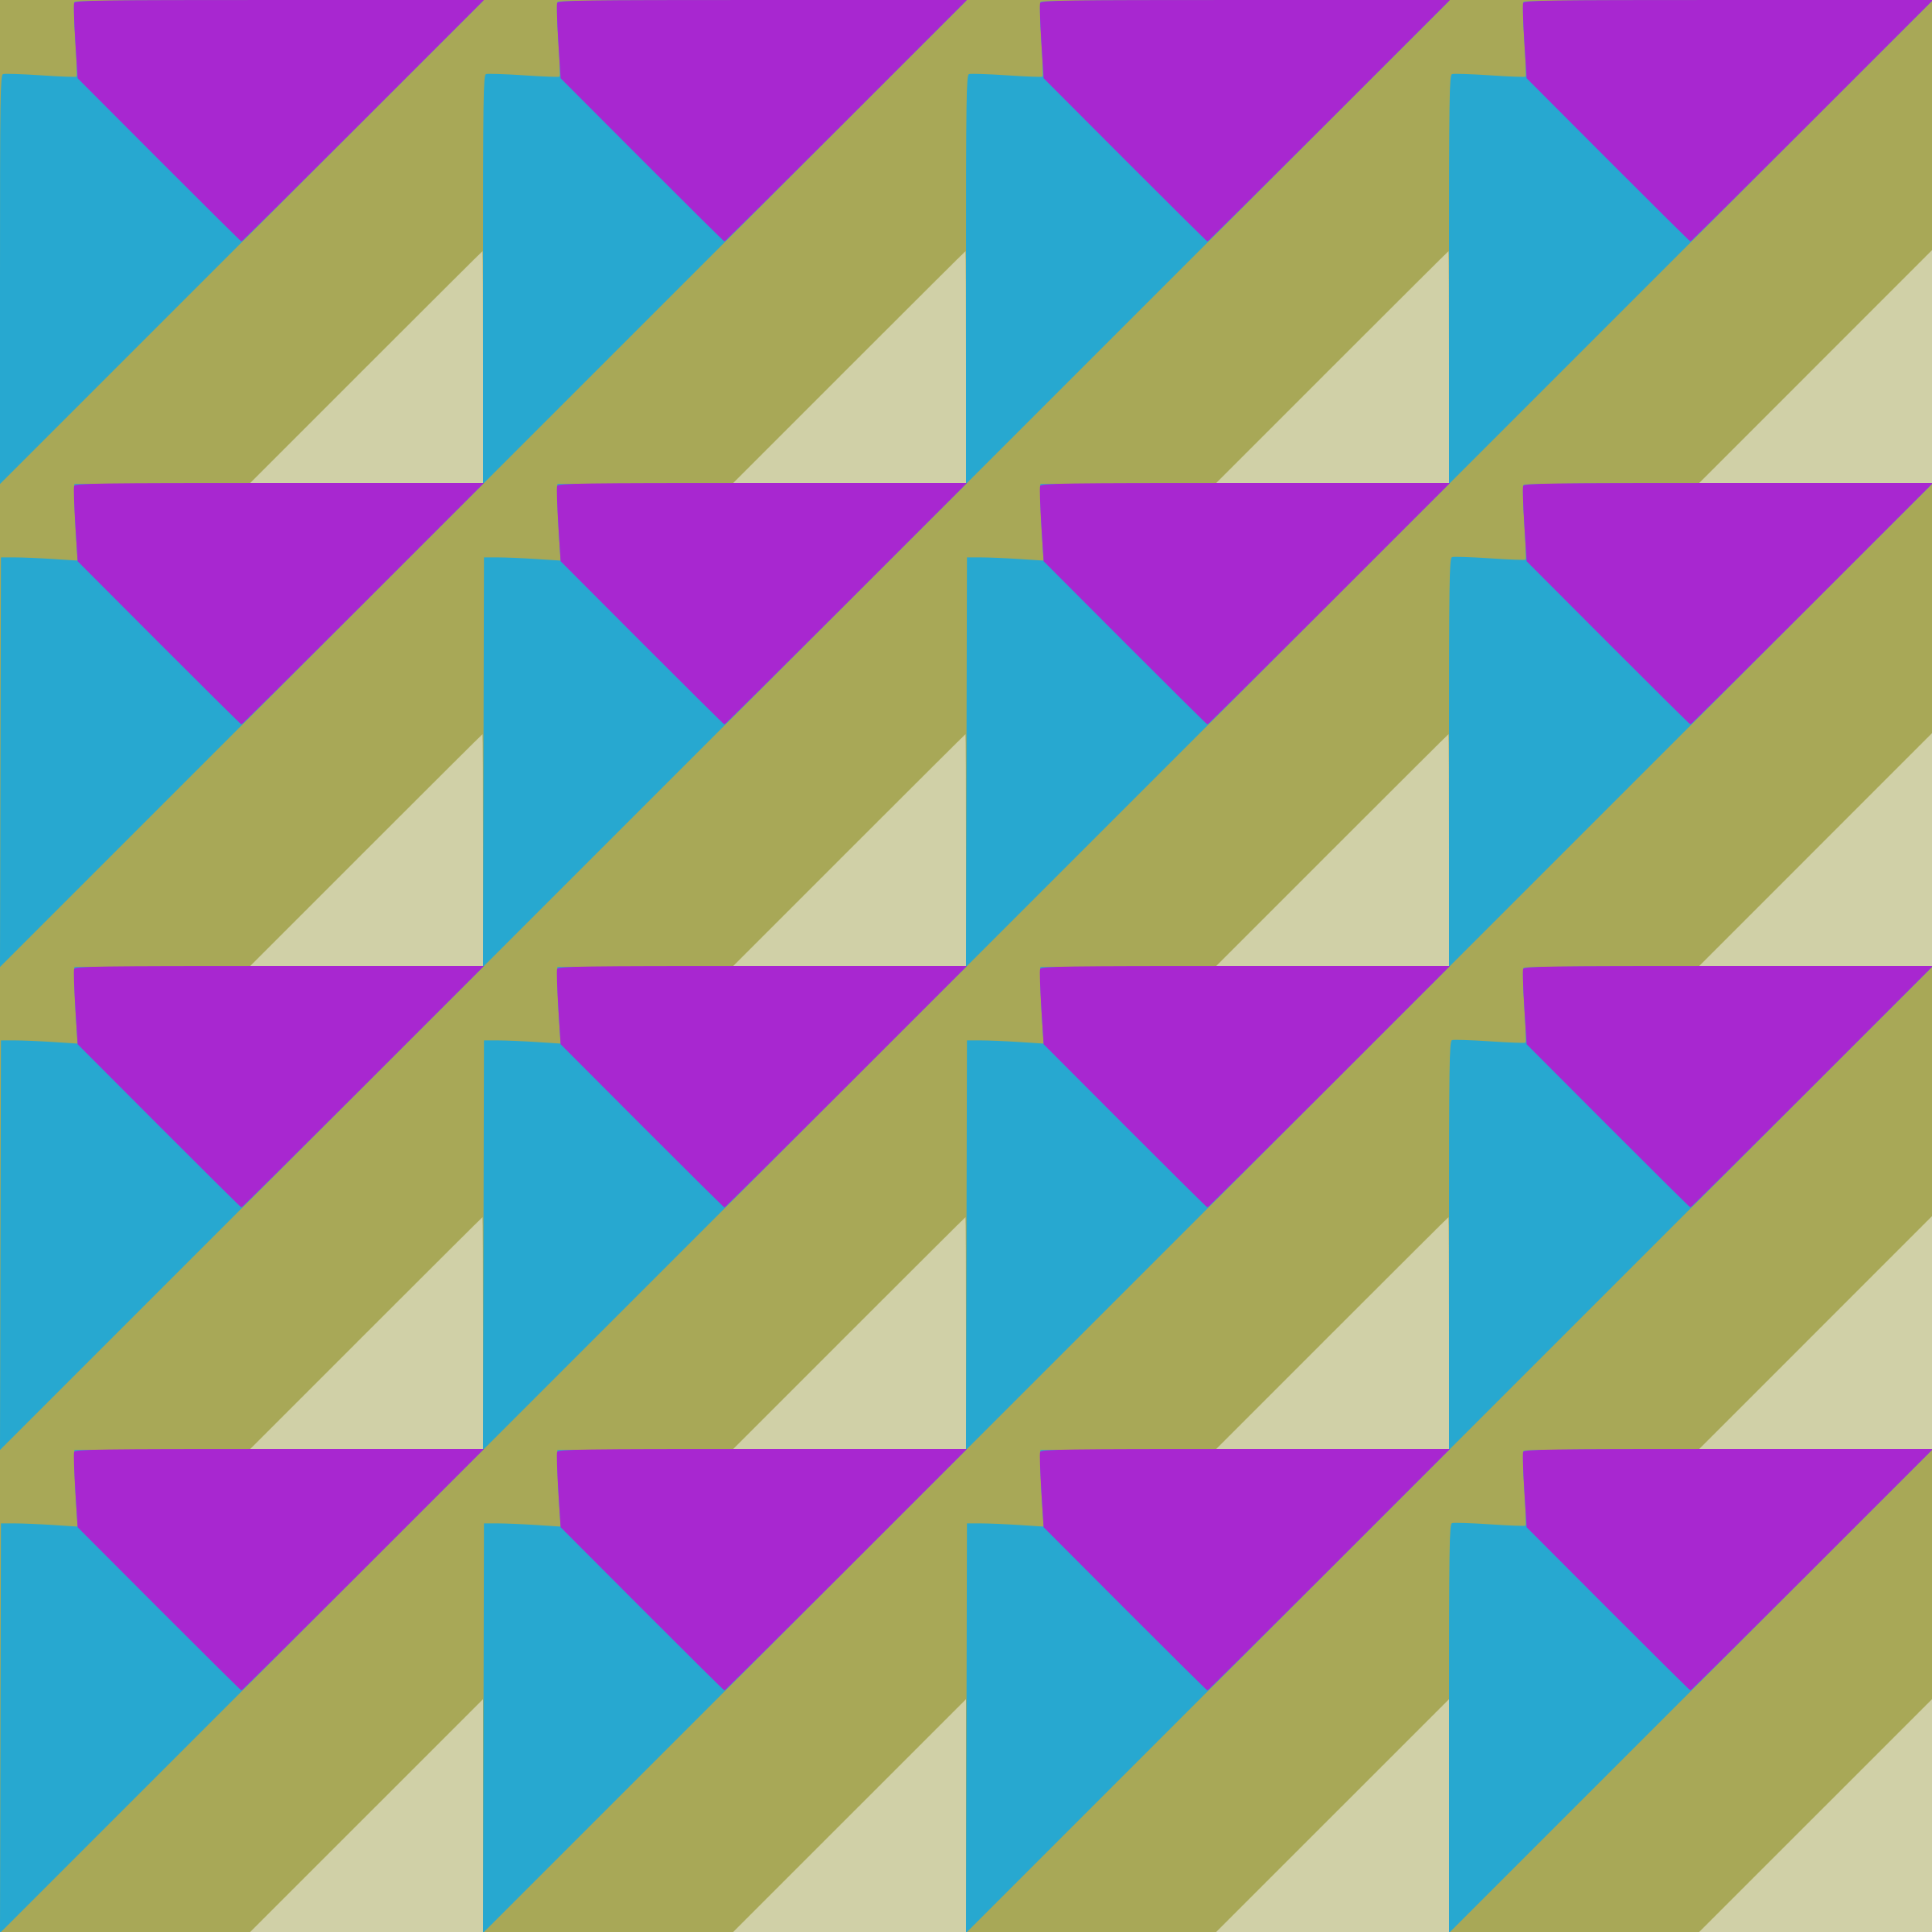 Background pattern 16 by Firkin